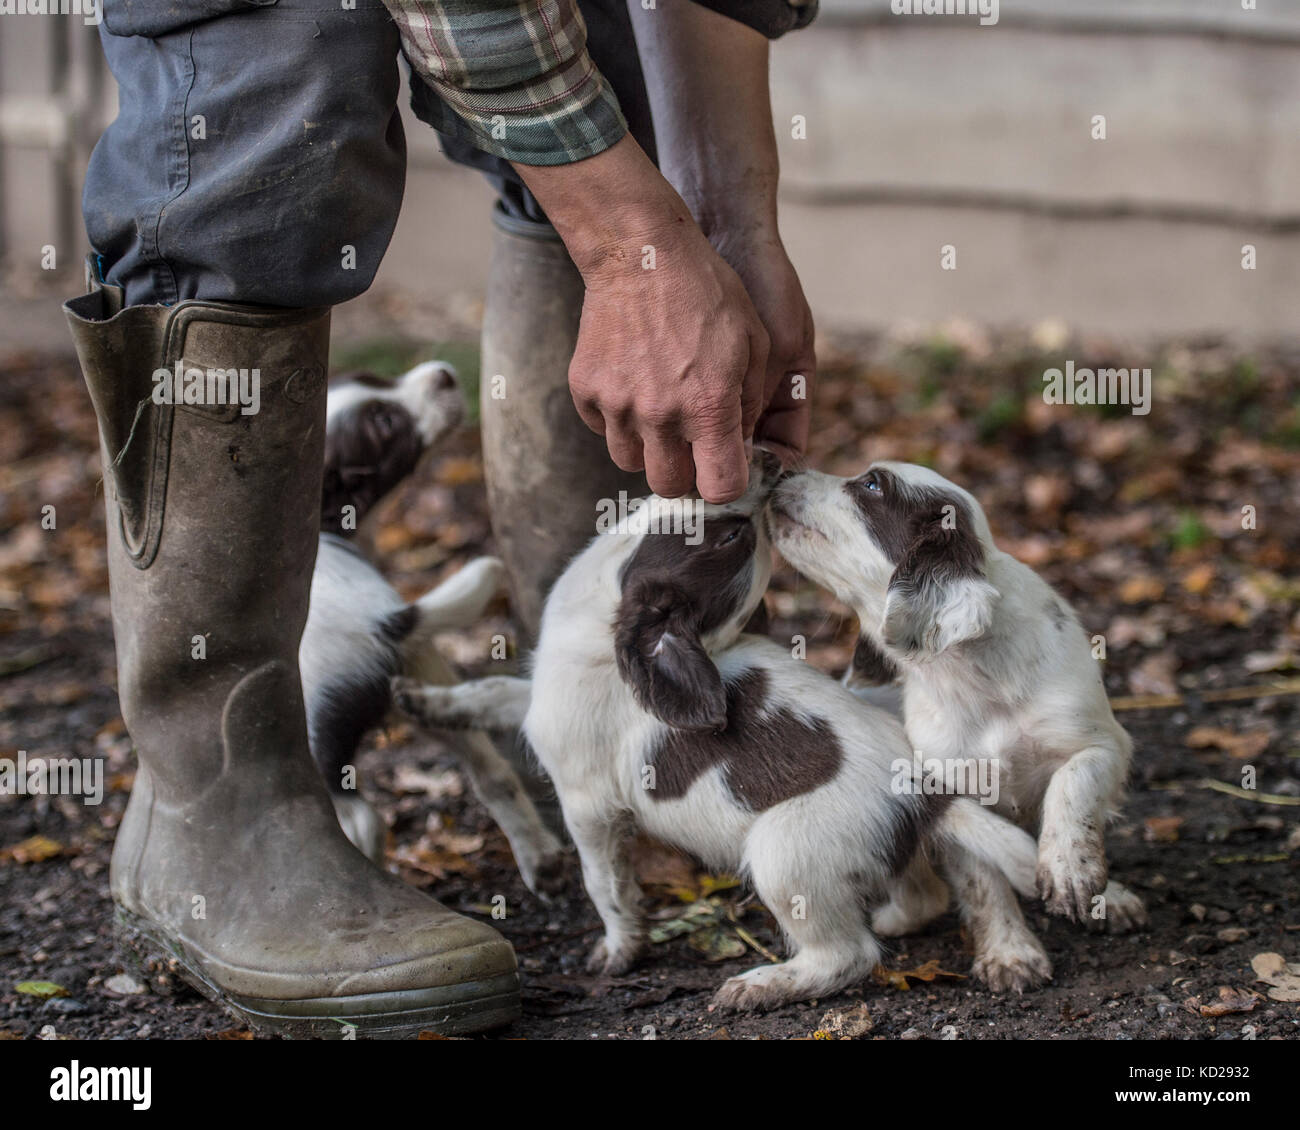 breeder with spaniel puppies - Stock Image